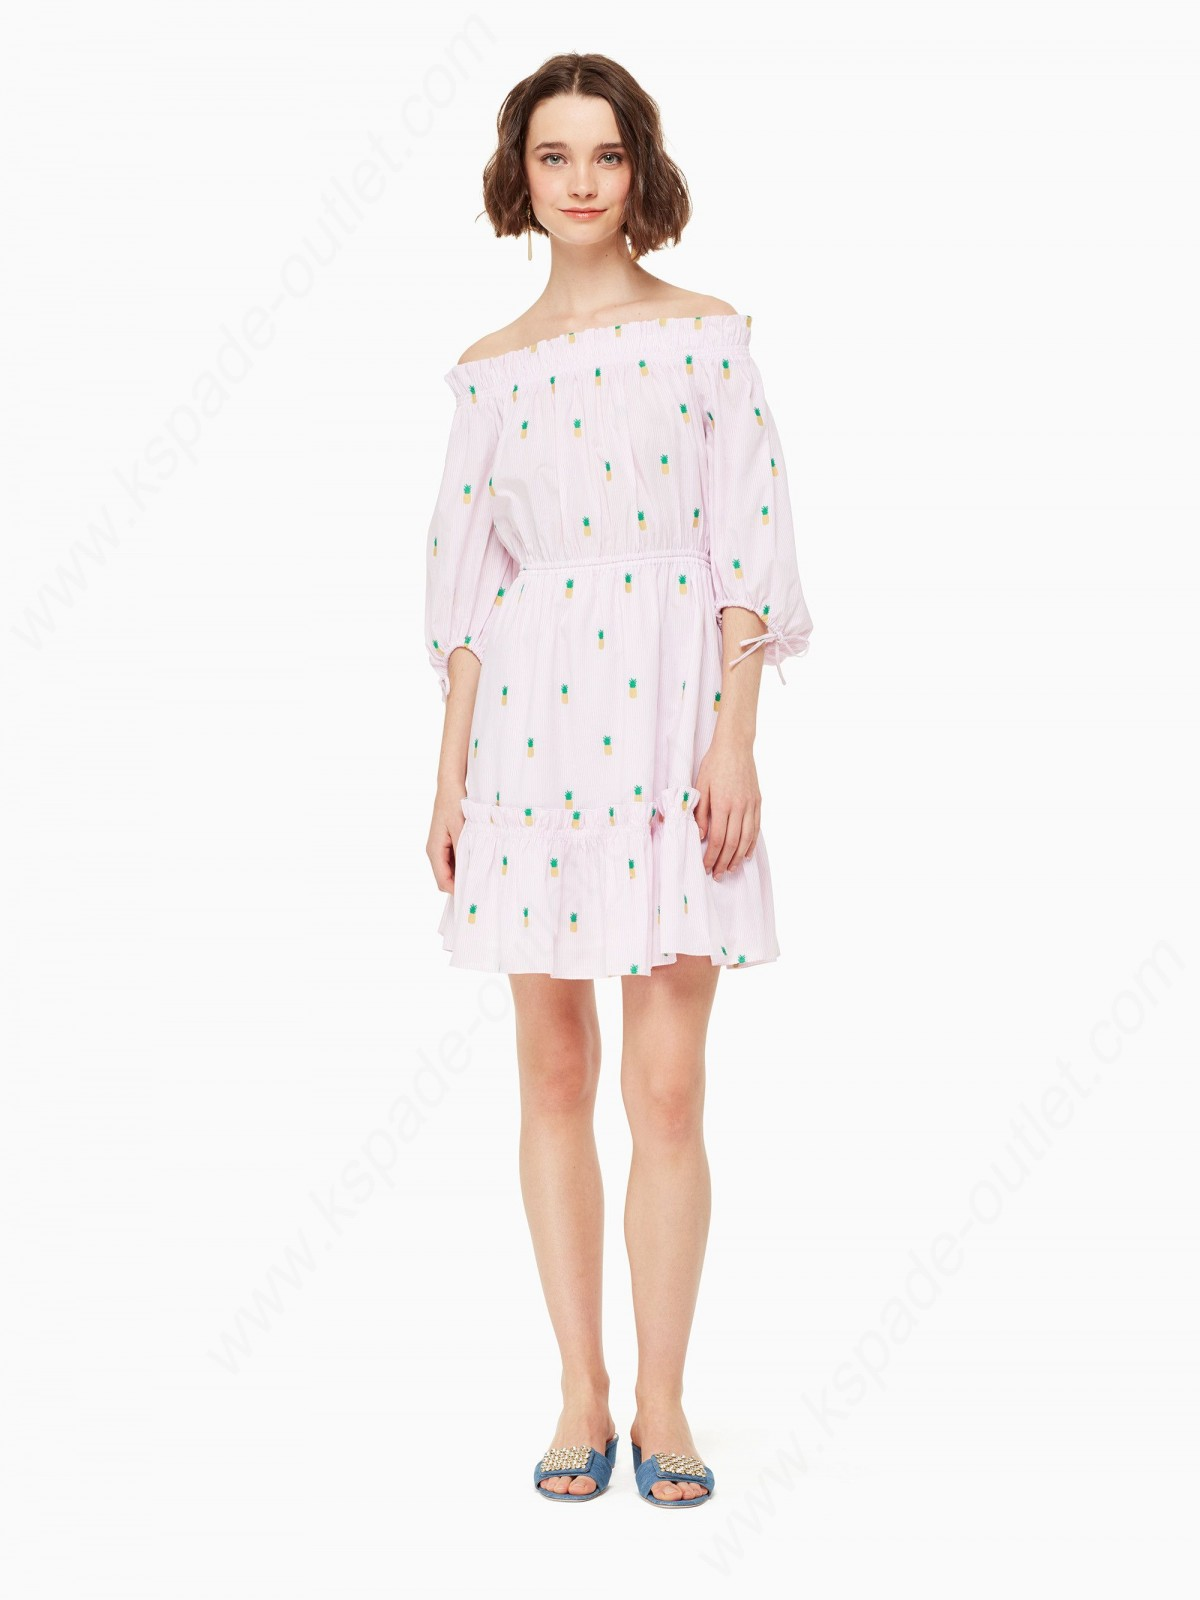 Kate Spade Lady Clothing Pineapple Off The Shoulder Dress - -0